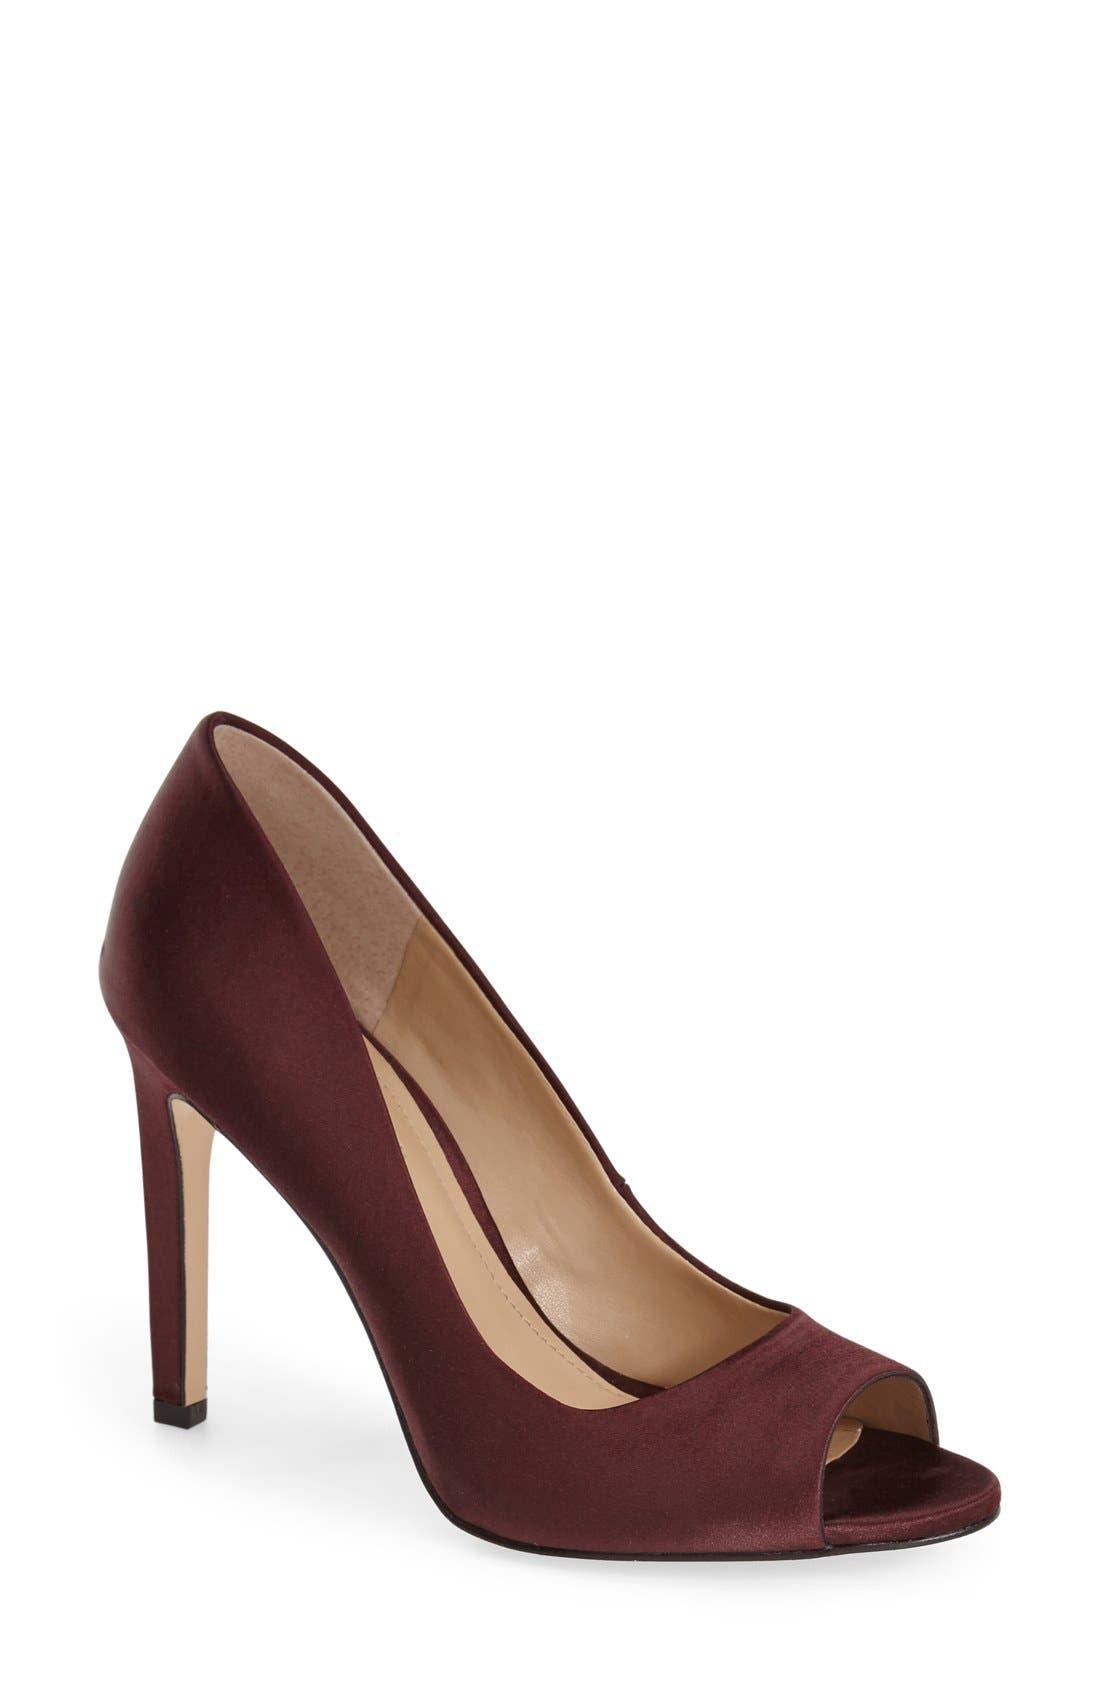 Main Image - BCBGeneration 'Chique' Open Toe Pump (Women)